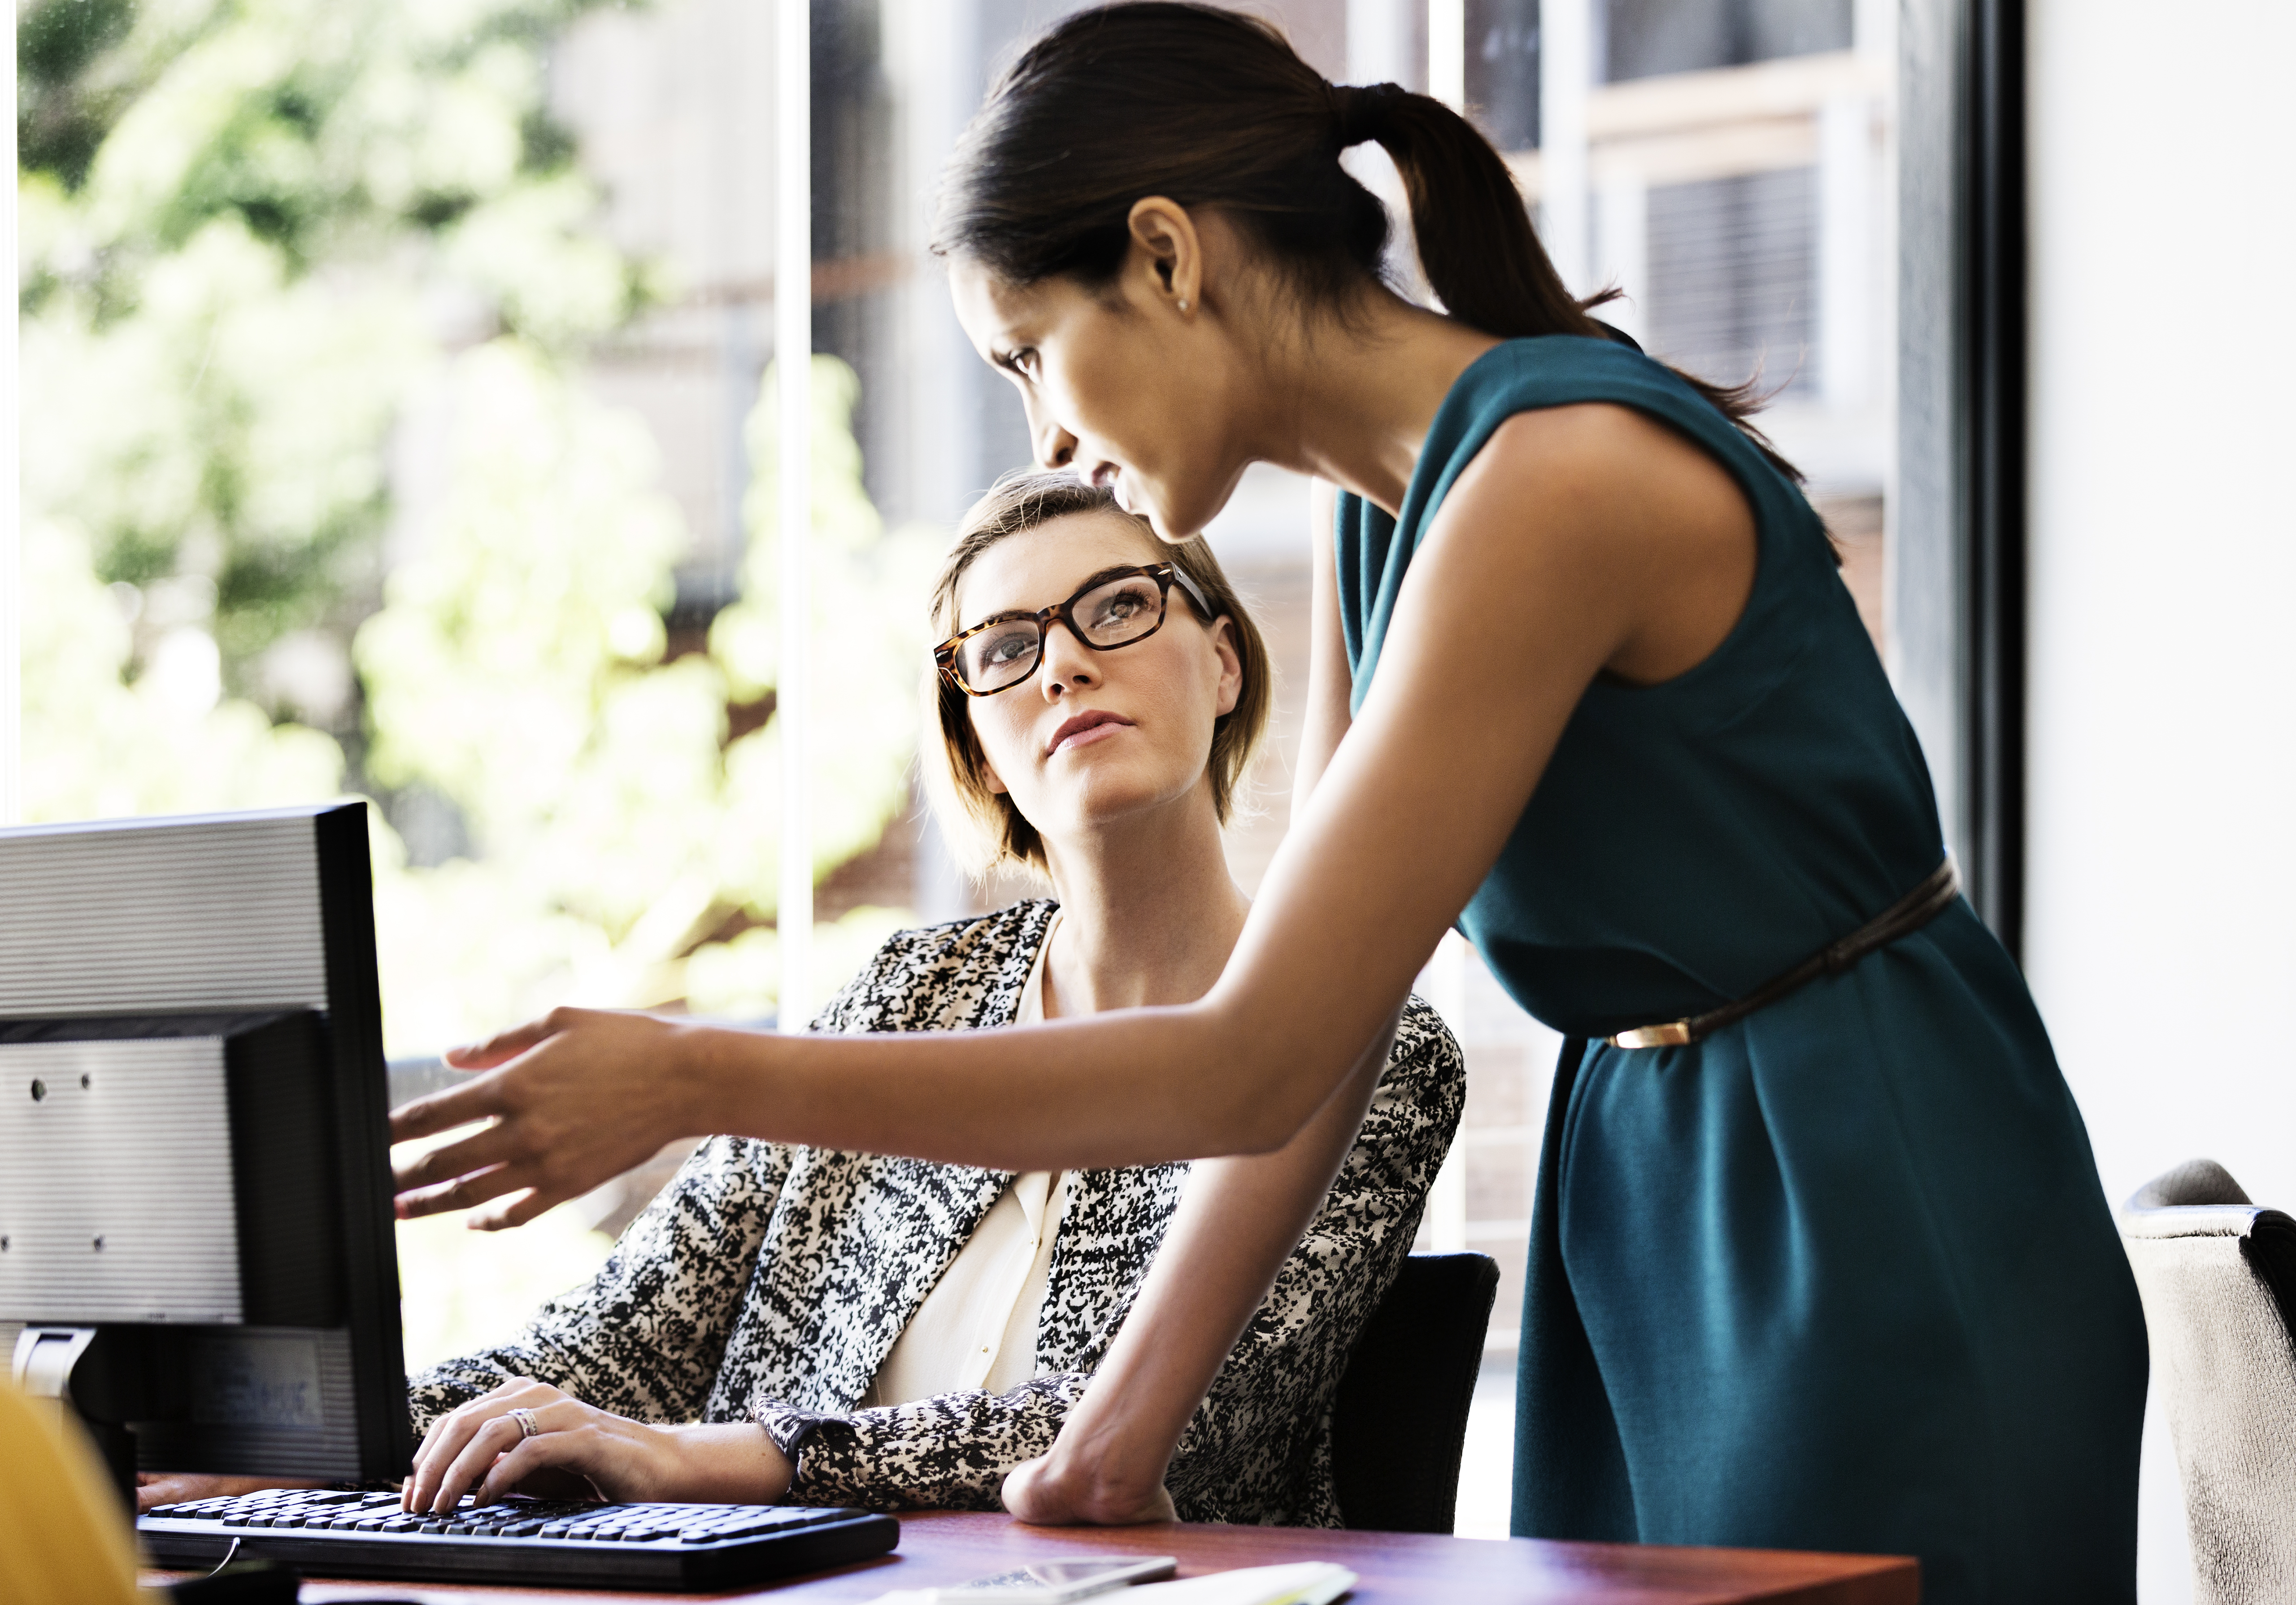 Businesswoman explaining something to female colleague over computer at desk in office